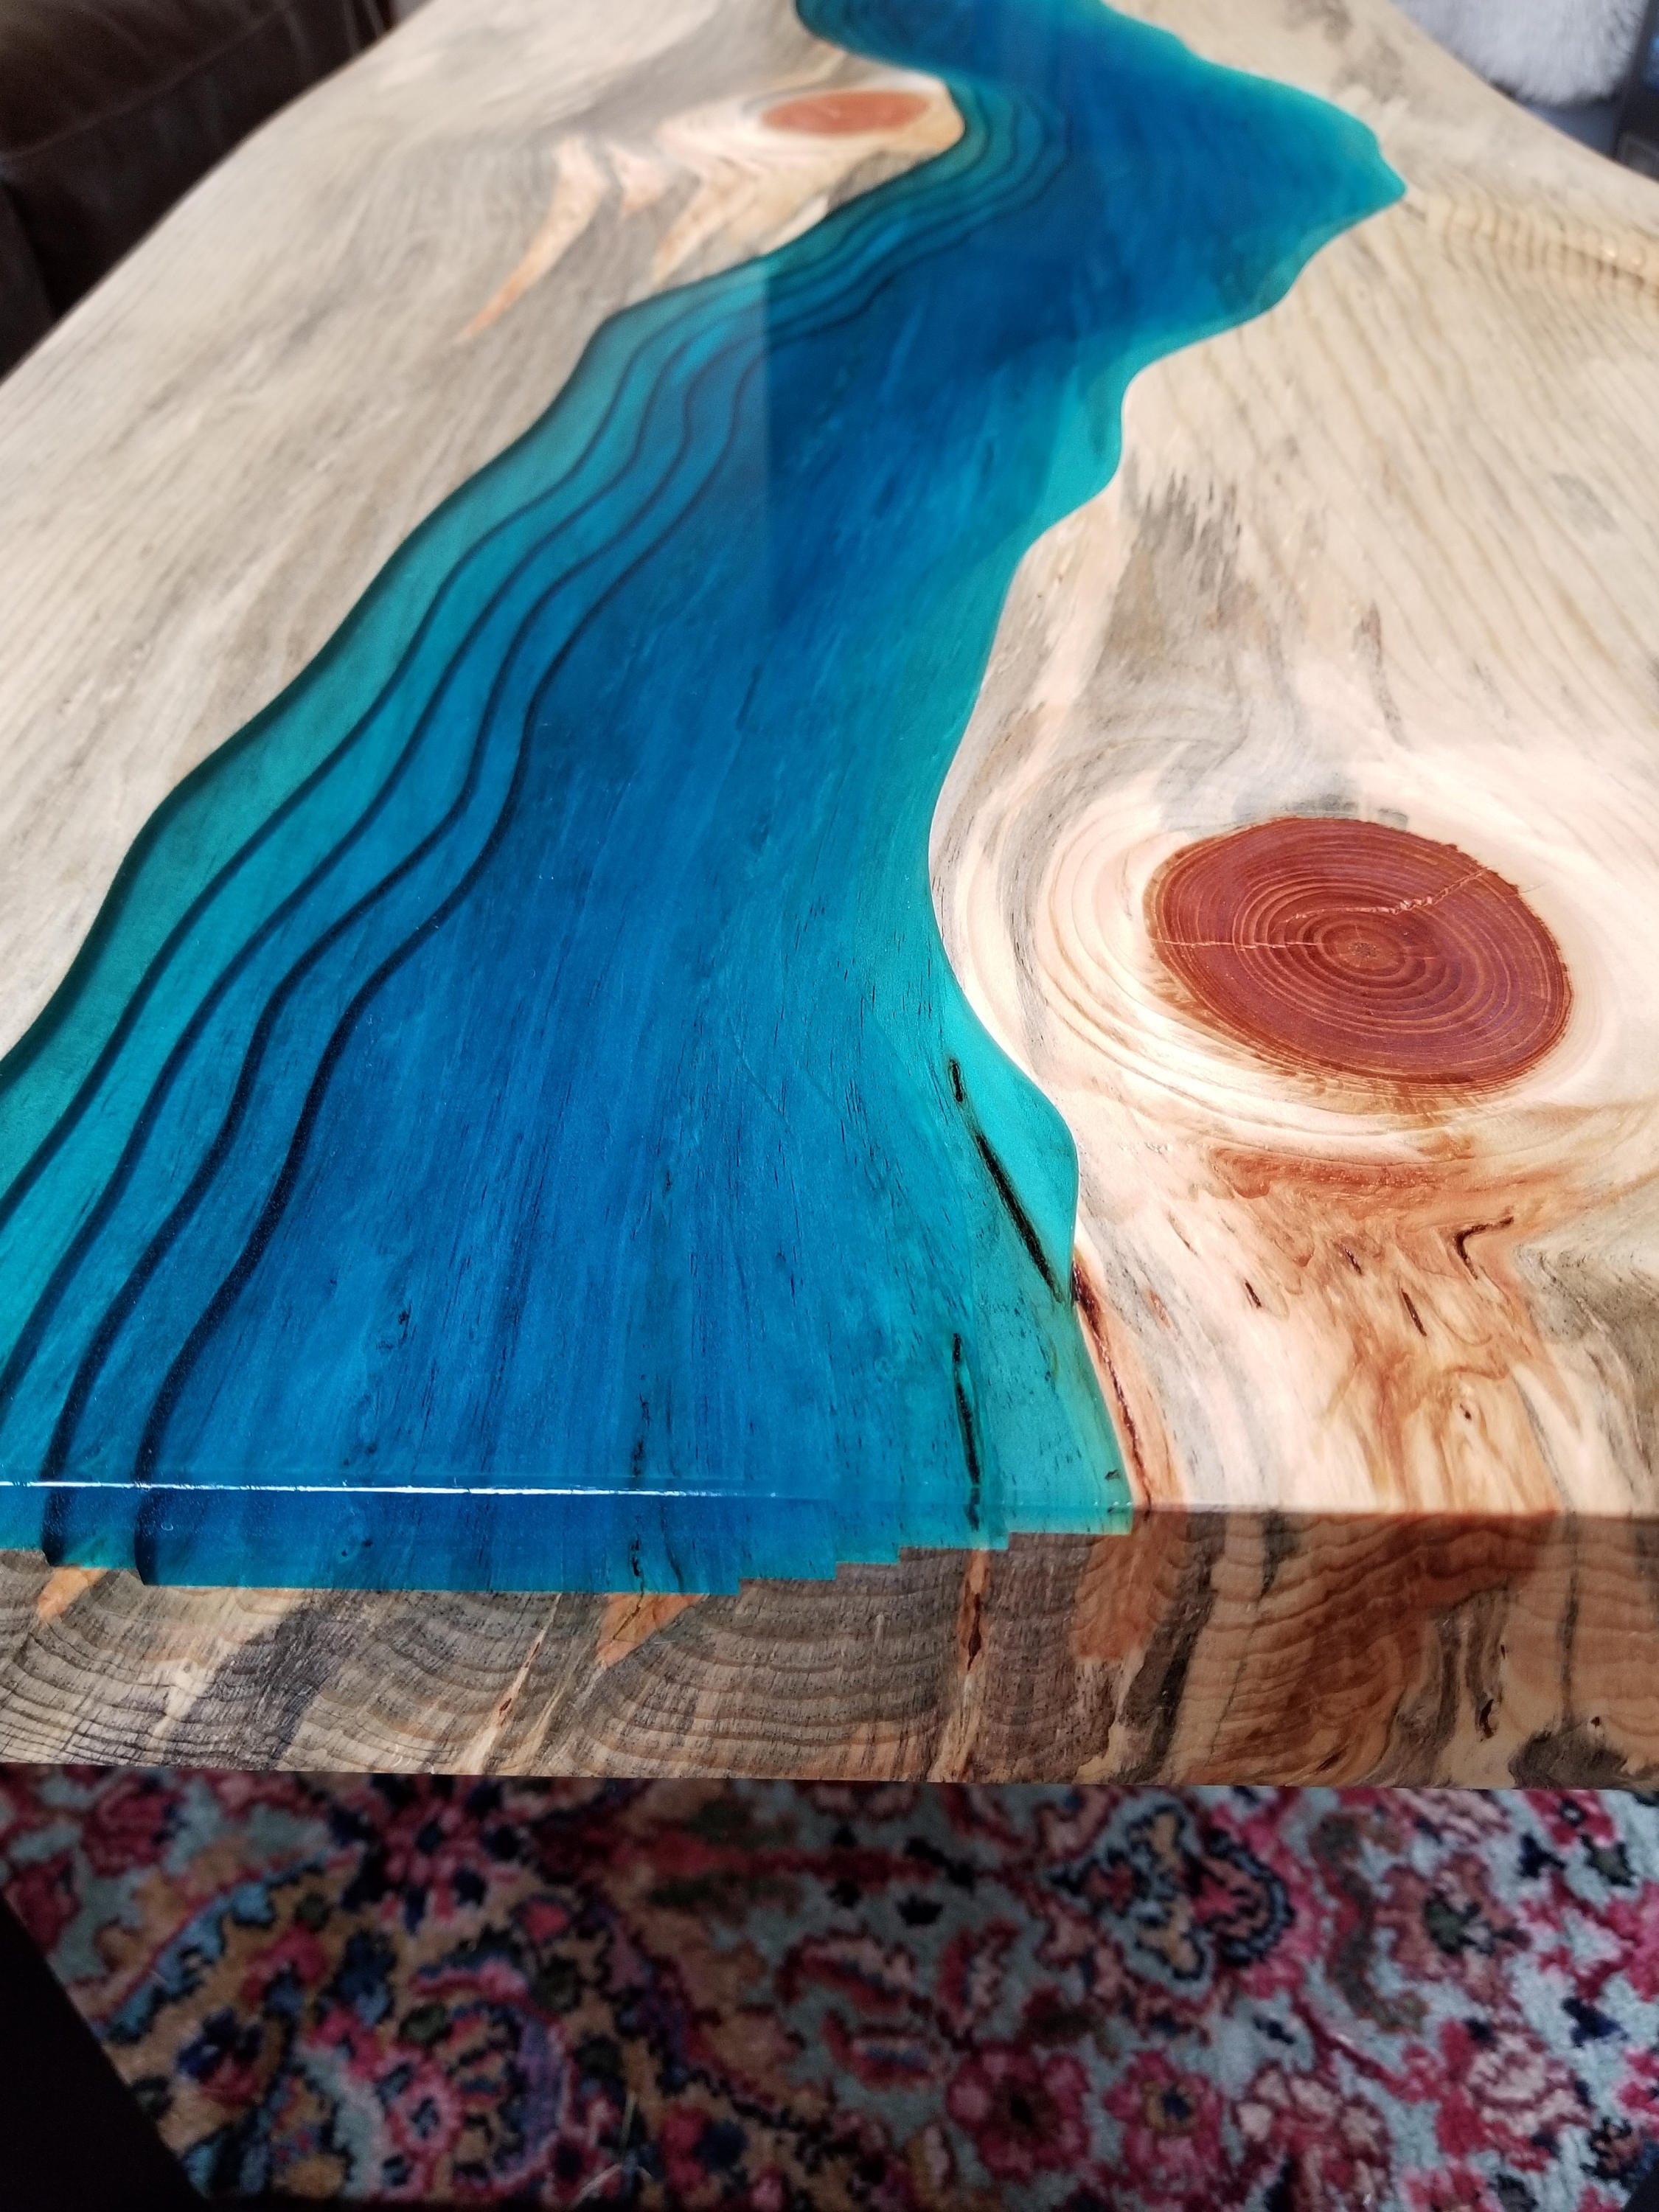 Sold Epoxy River Coffee Table Coffee on Slab Wood Furniture Designs